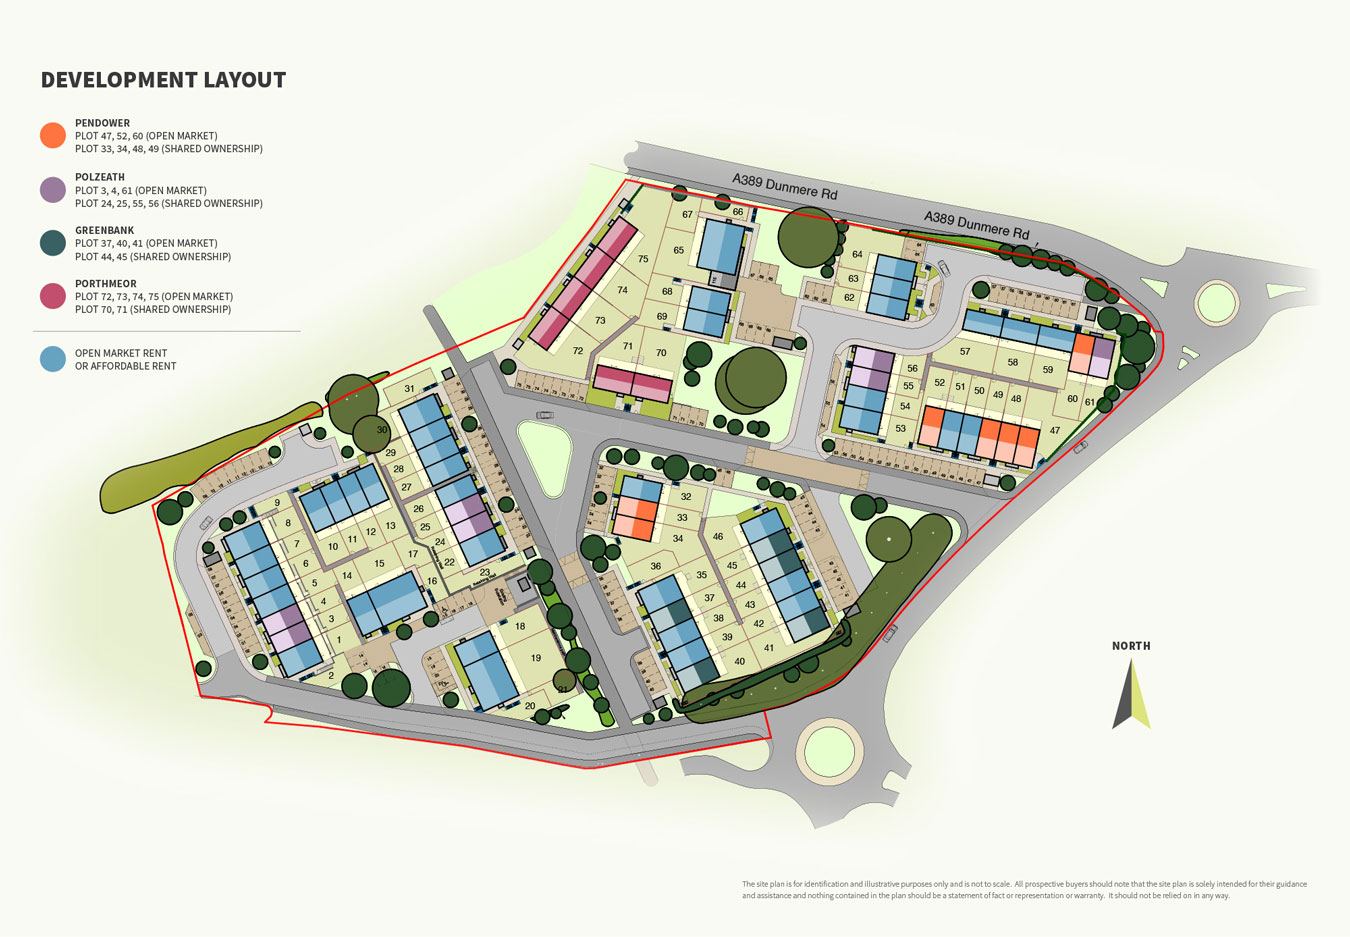 Heathlands View New Homes Development - Site Layout